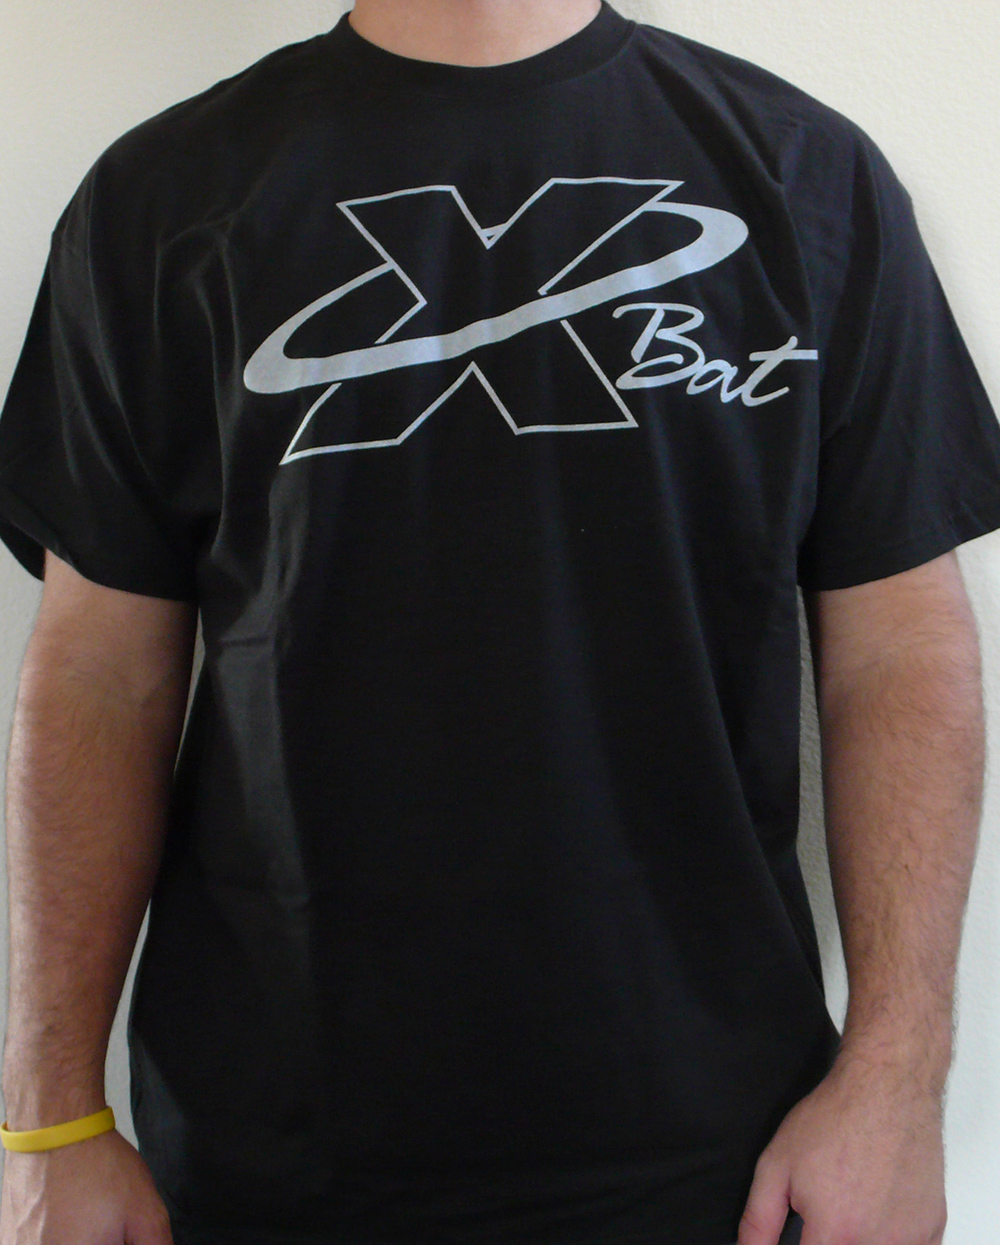 X Bats T-Shirt (Short Sleeve)